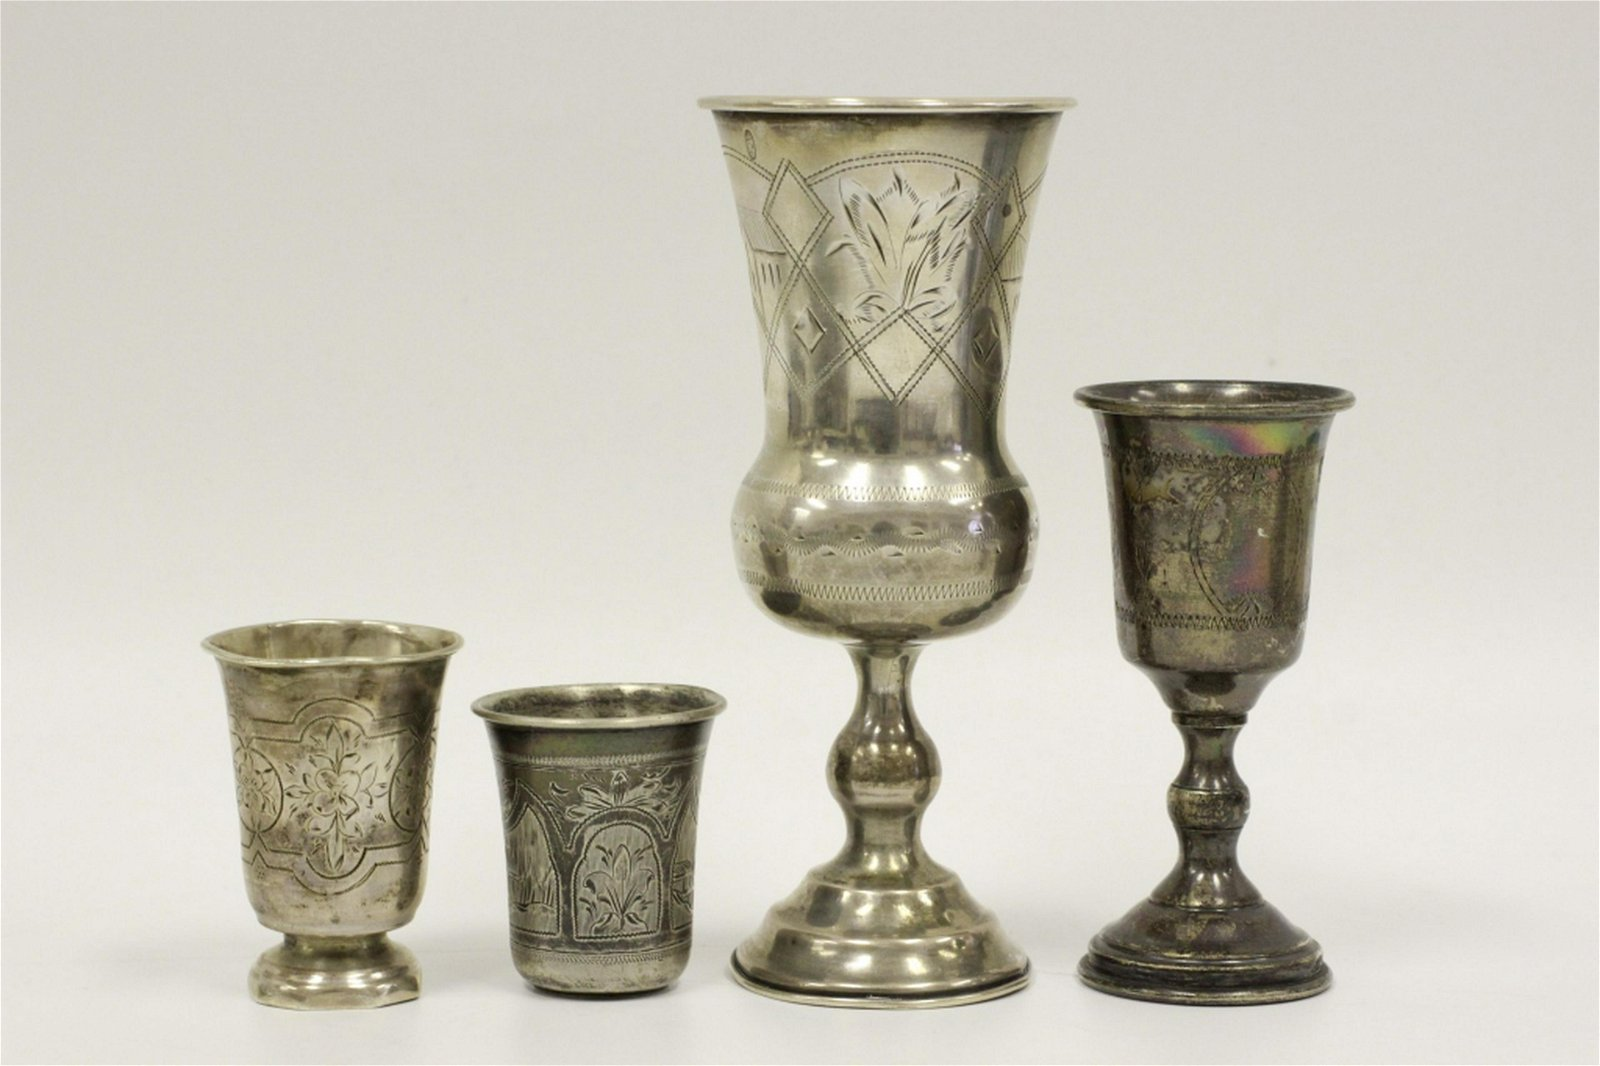 4 Judaica Silver Kiddush Cups. 3 Probably Russian